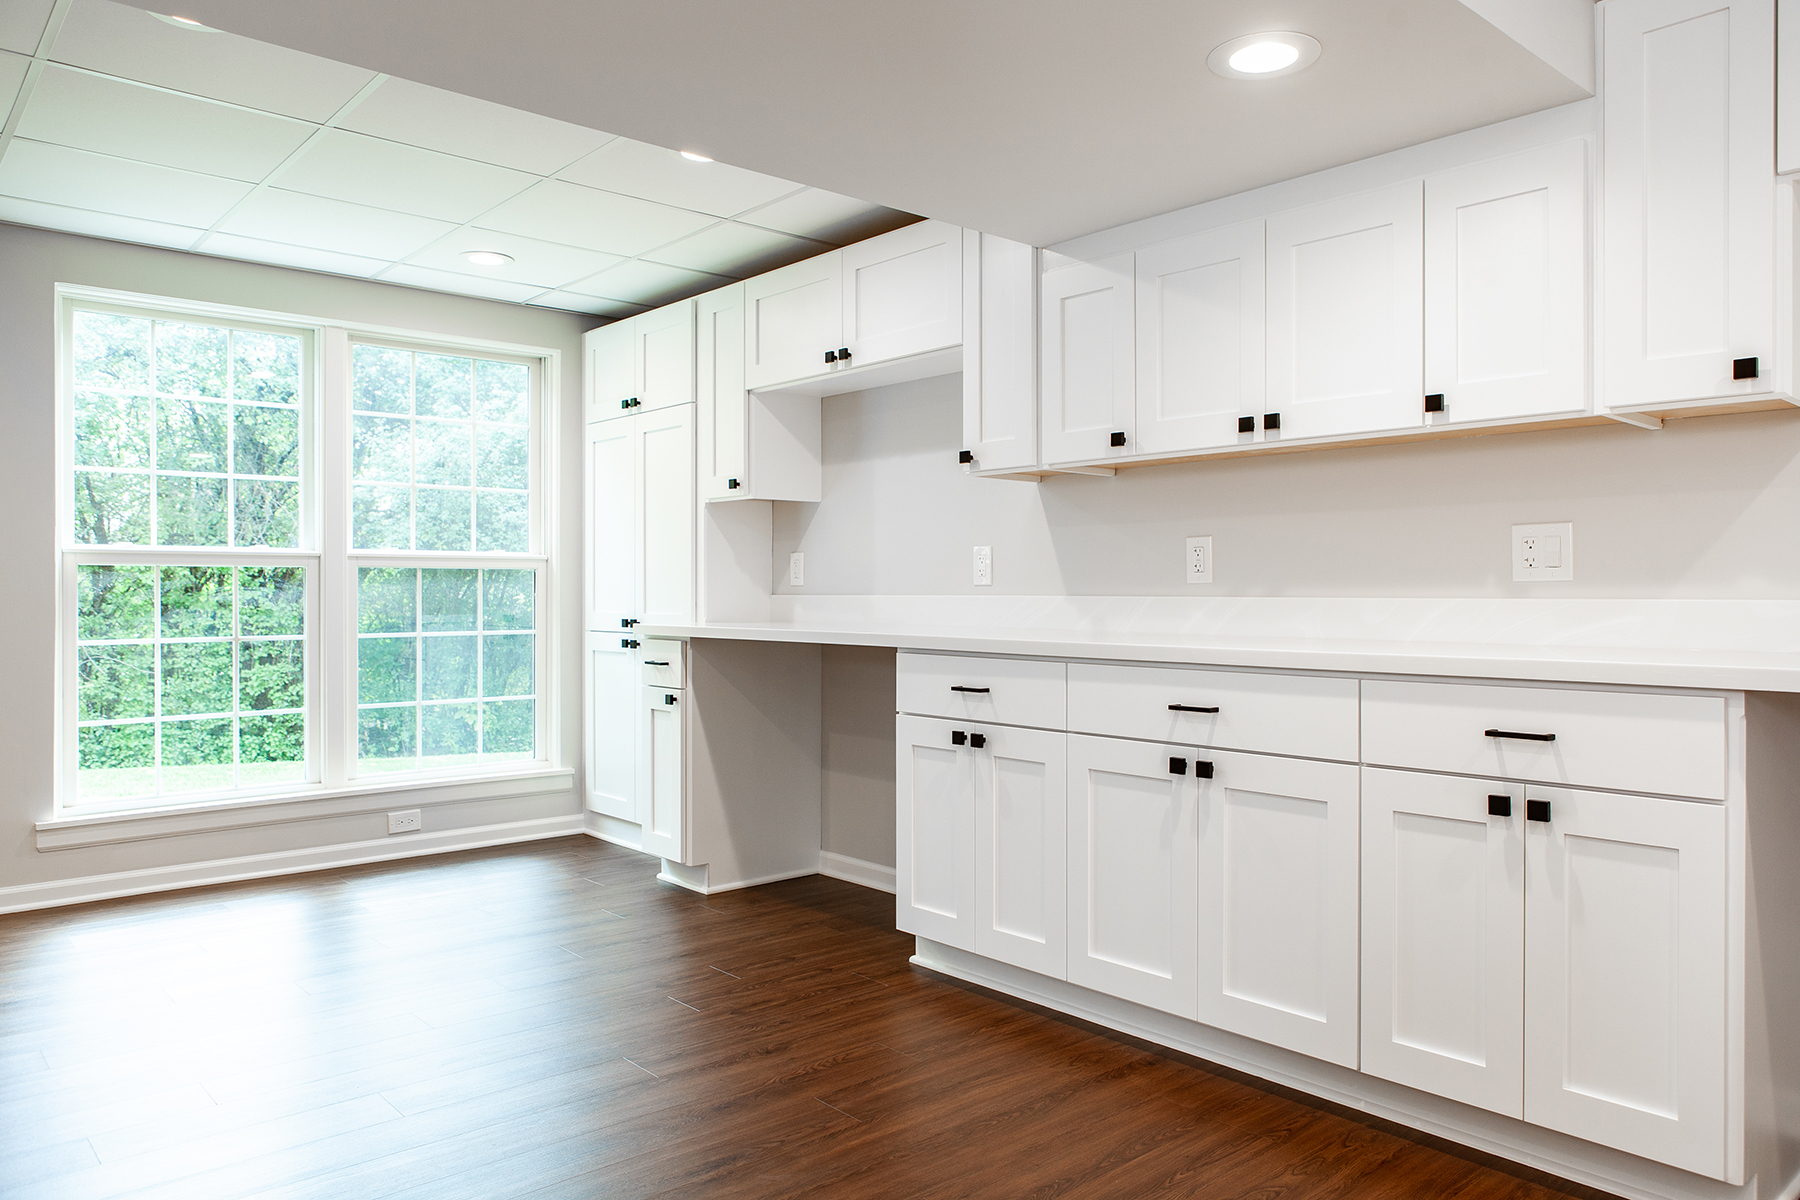 Basement remodel with lots of natural light and custom cabinetry.